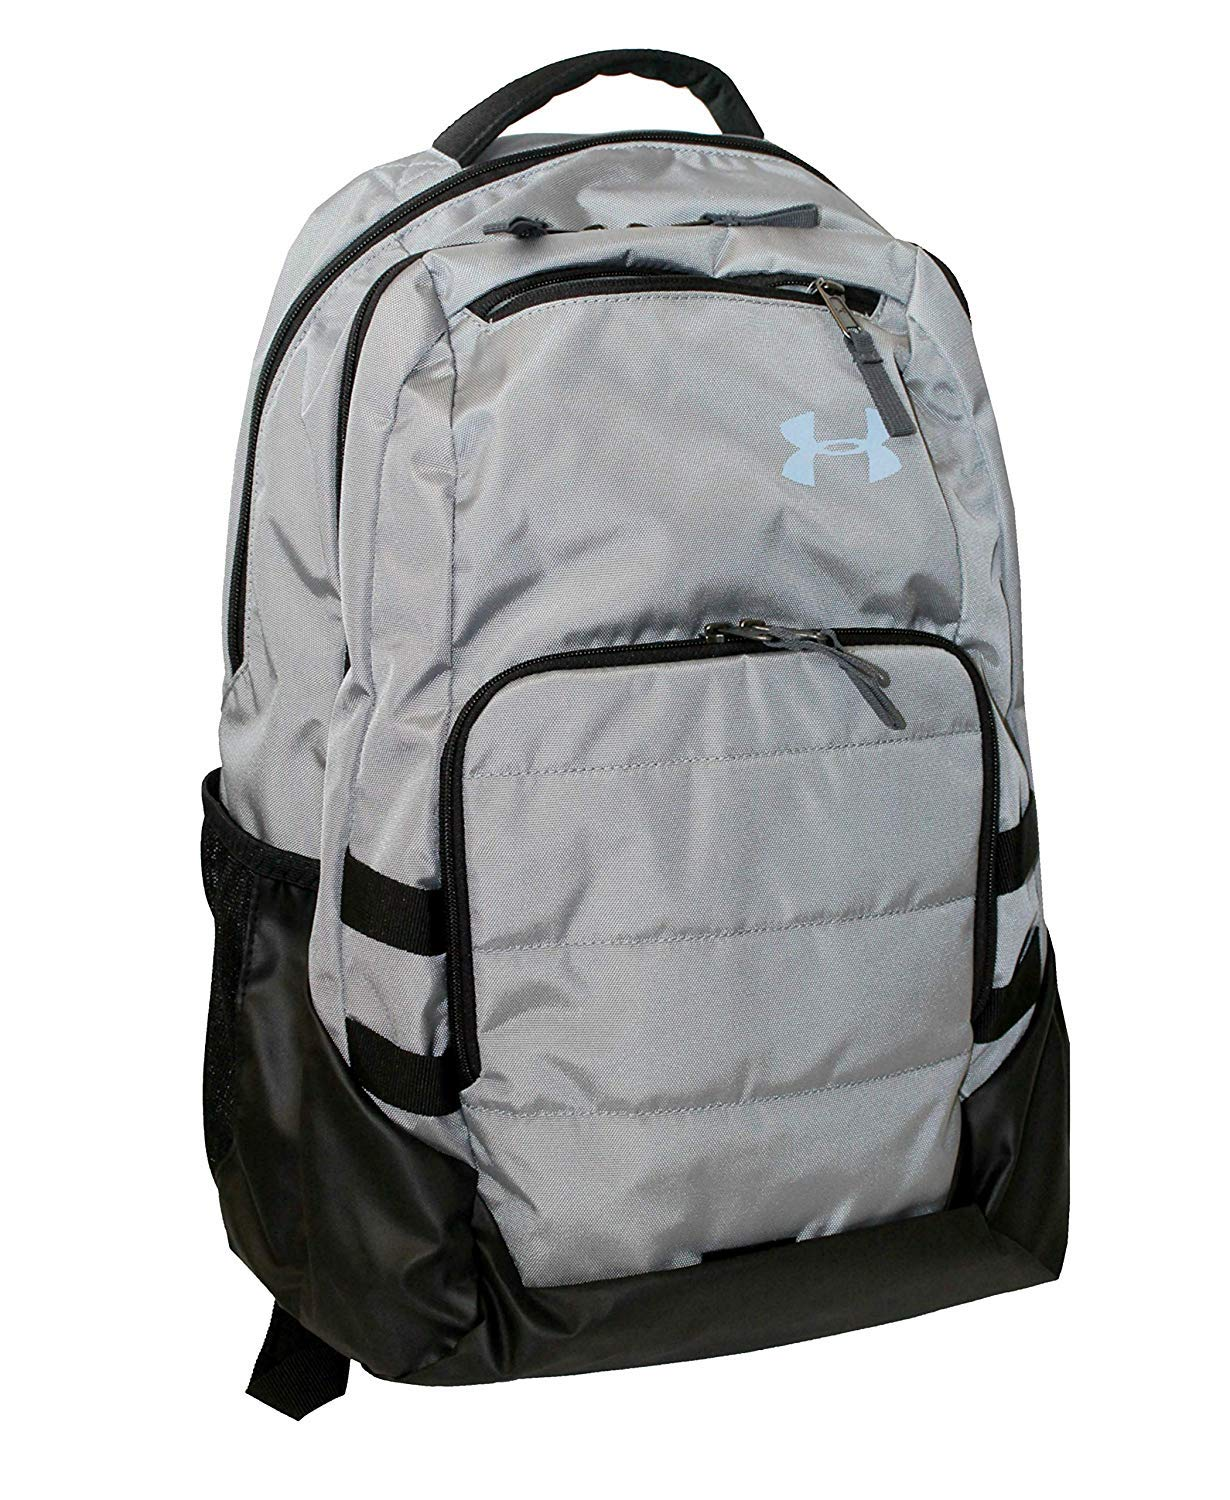 Under Armour Raid Storm1 Backpack (Steel) by Under Armour